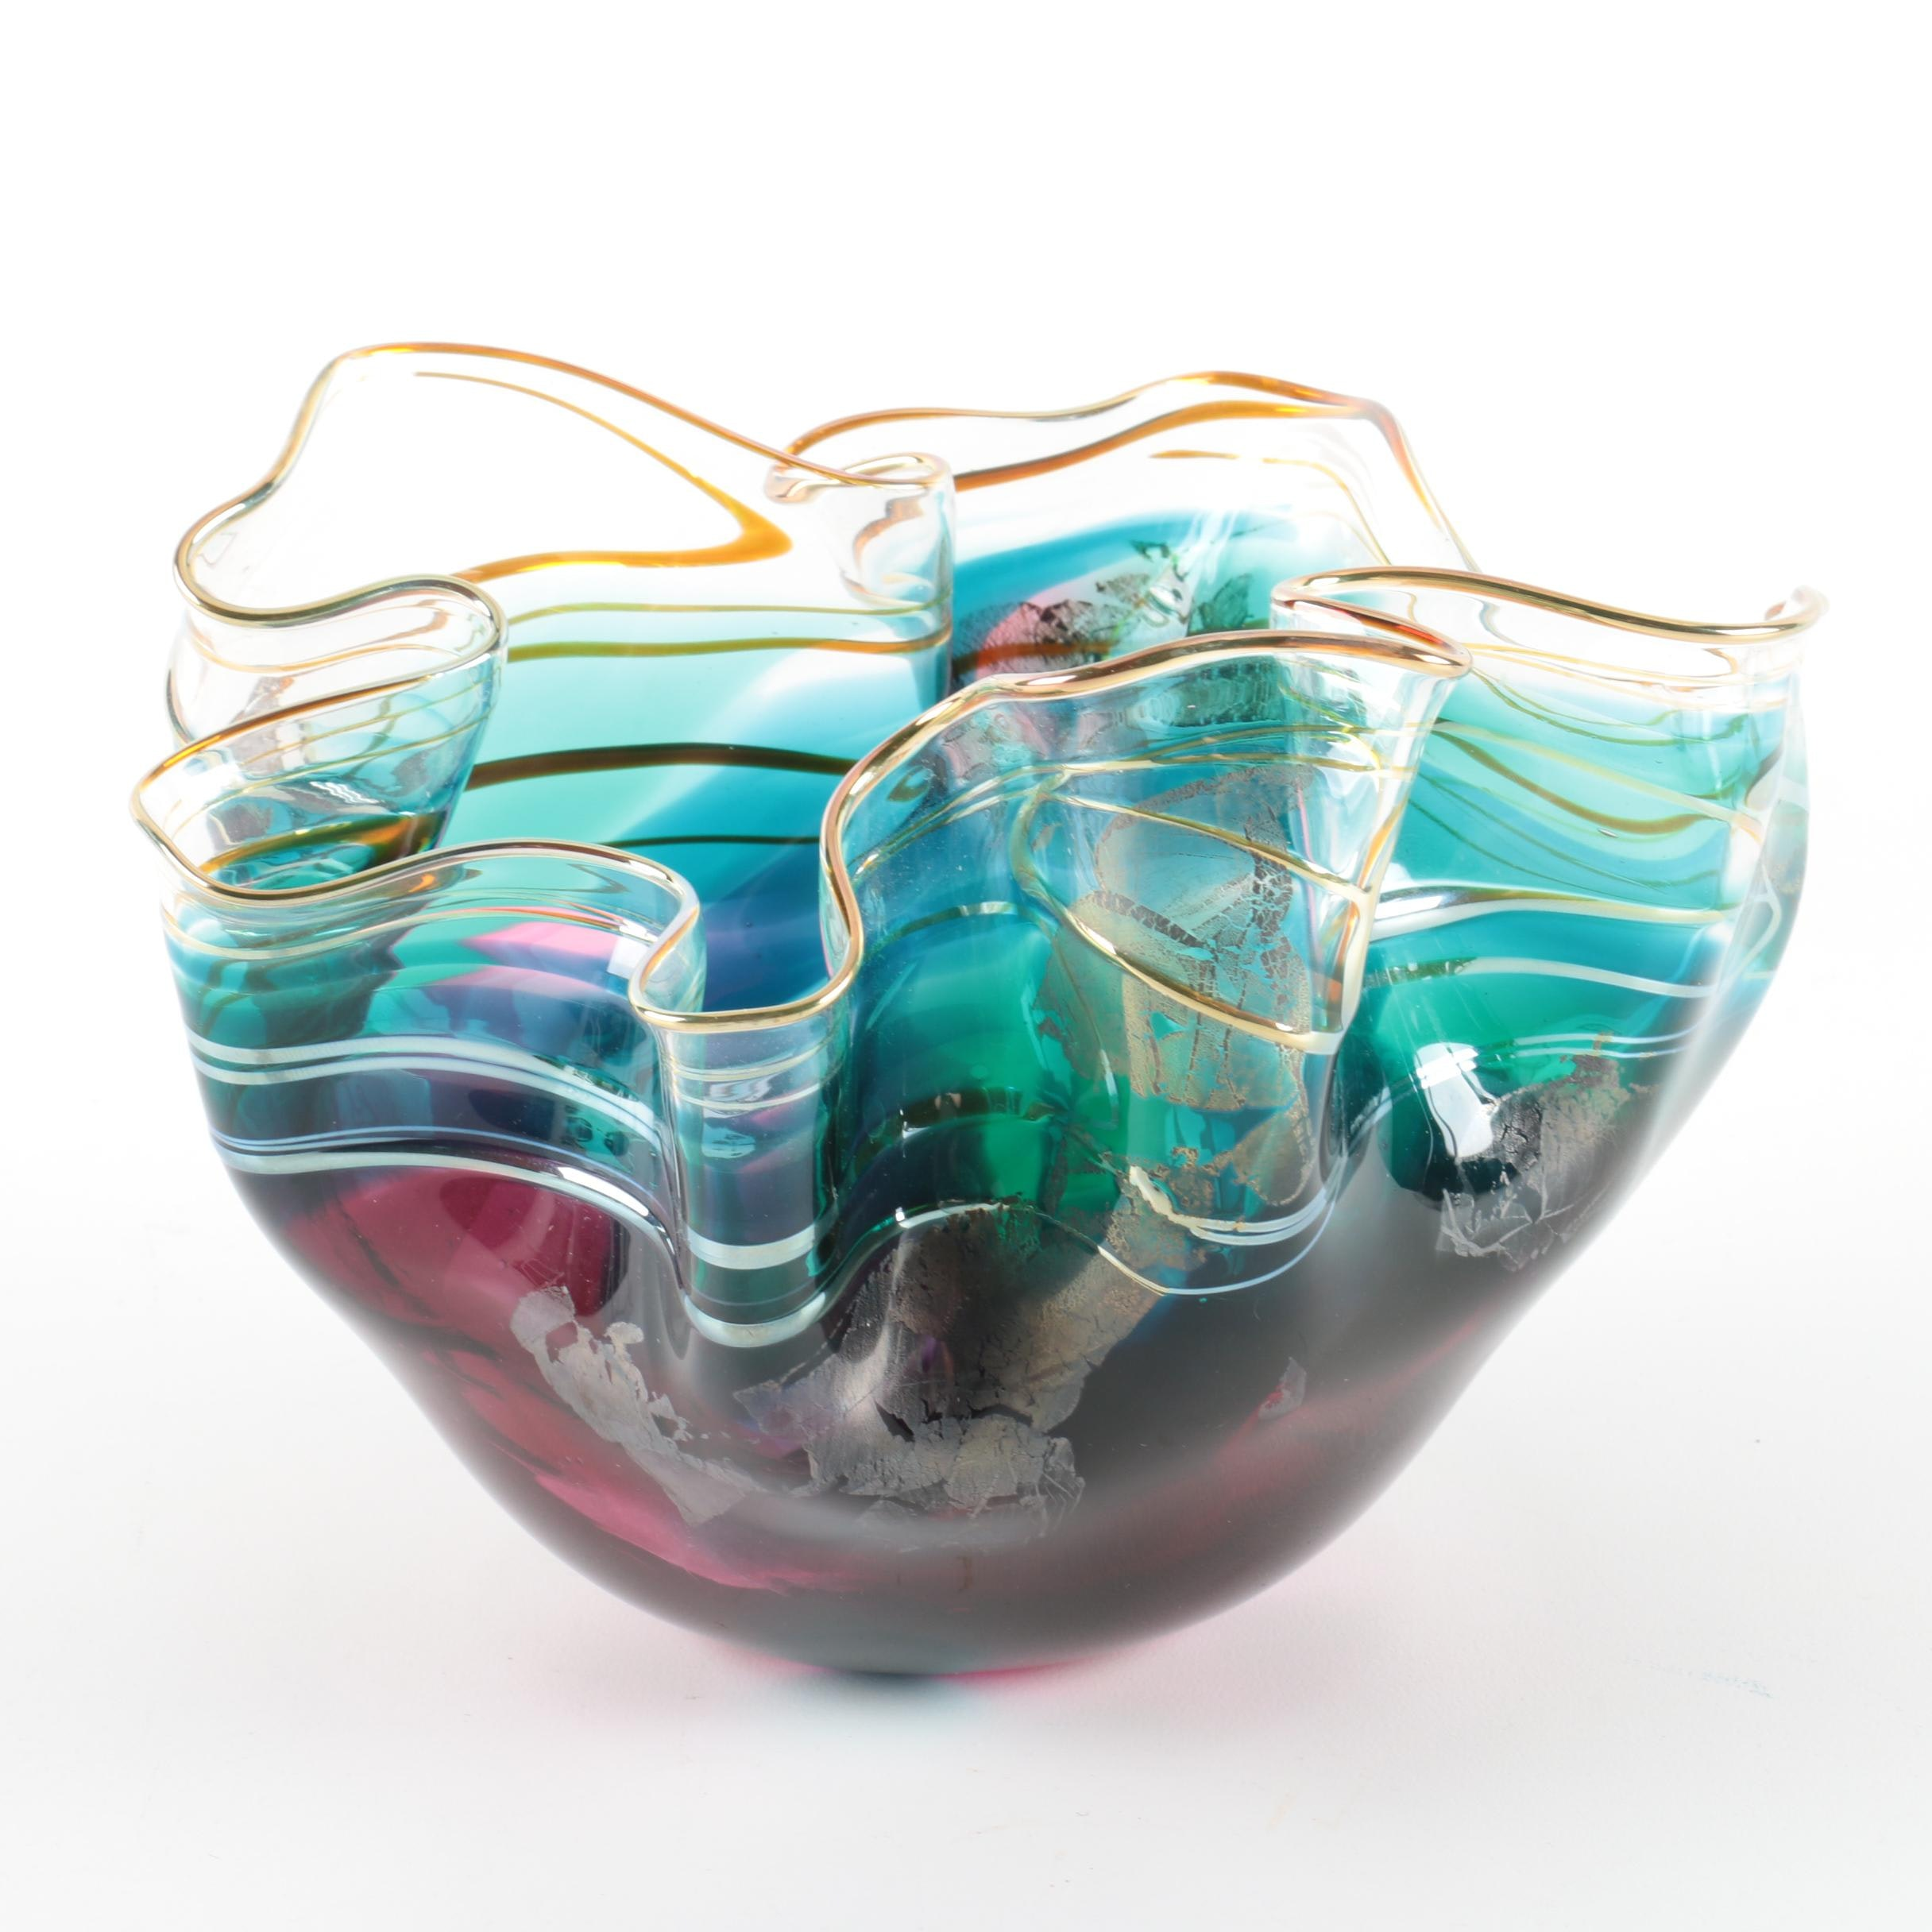 1997 Scott and Laura Curry Art Glass Bowl